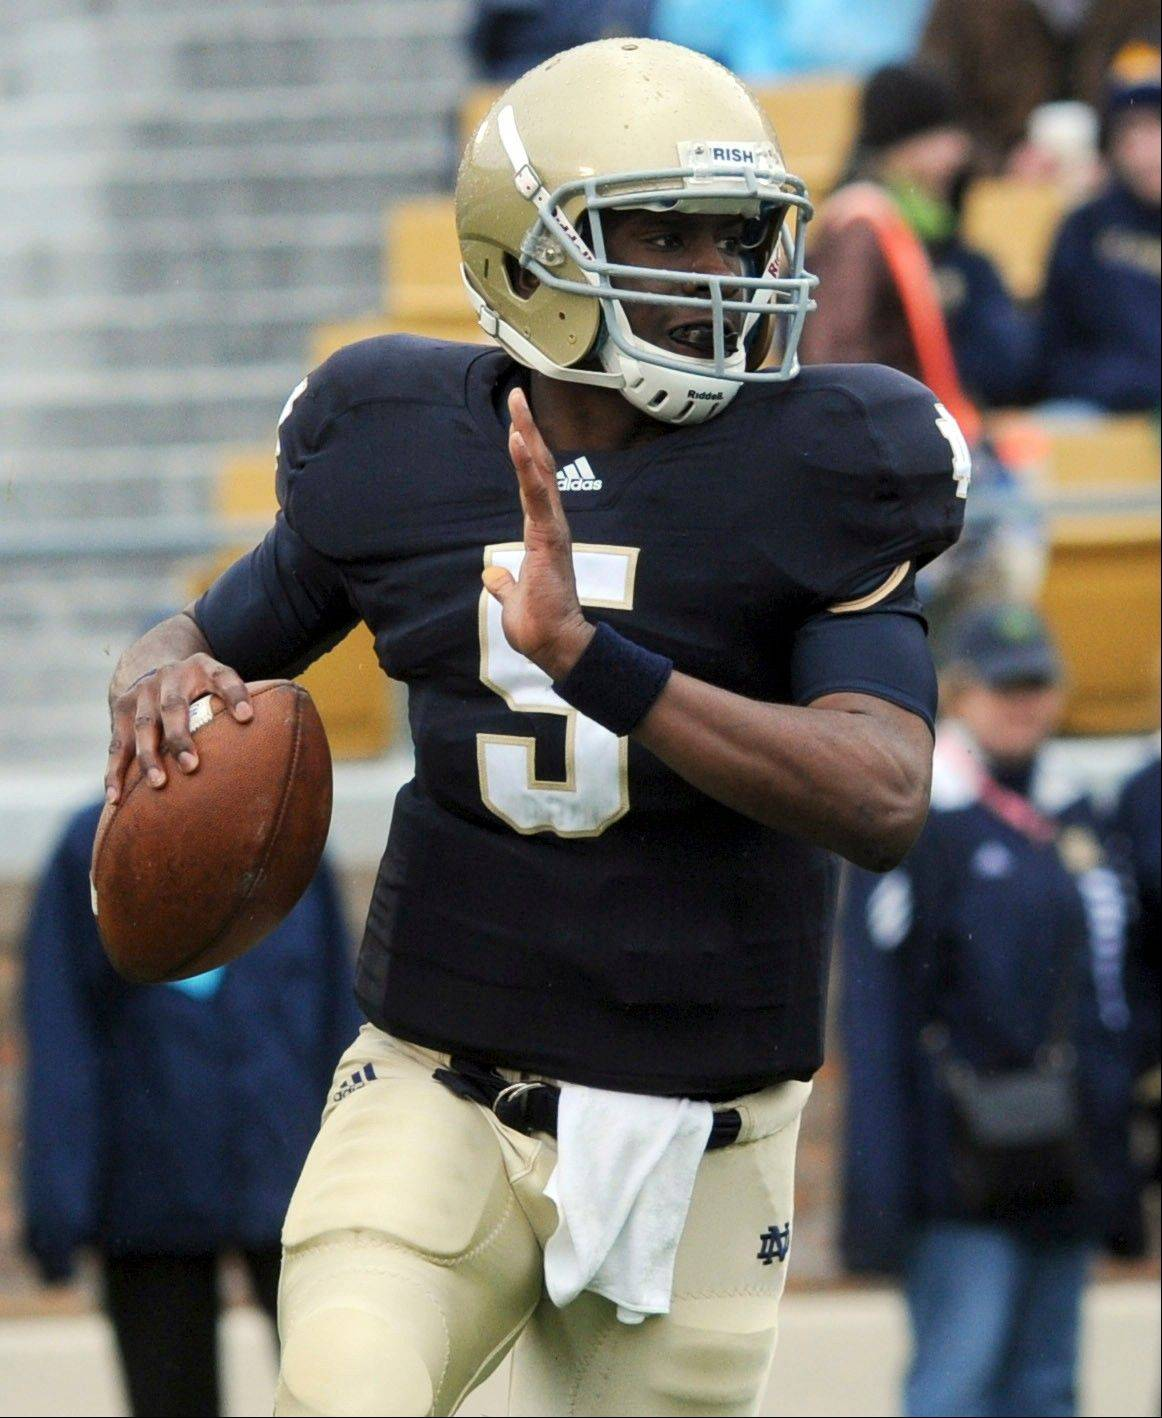 FILE - In this April 16, 2011, file photo, Notre Dame quarterback Everett Golson sprints out of the pocket during the first half of a spring NCAA college football game in South Bend, Ind. A Notre Dame spokesman says Golson is no longer enrolled at the school.